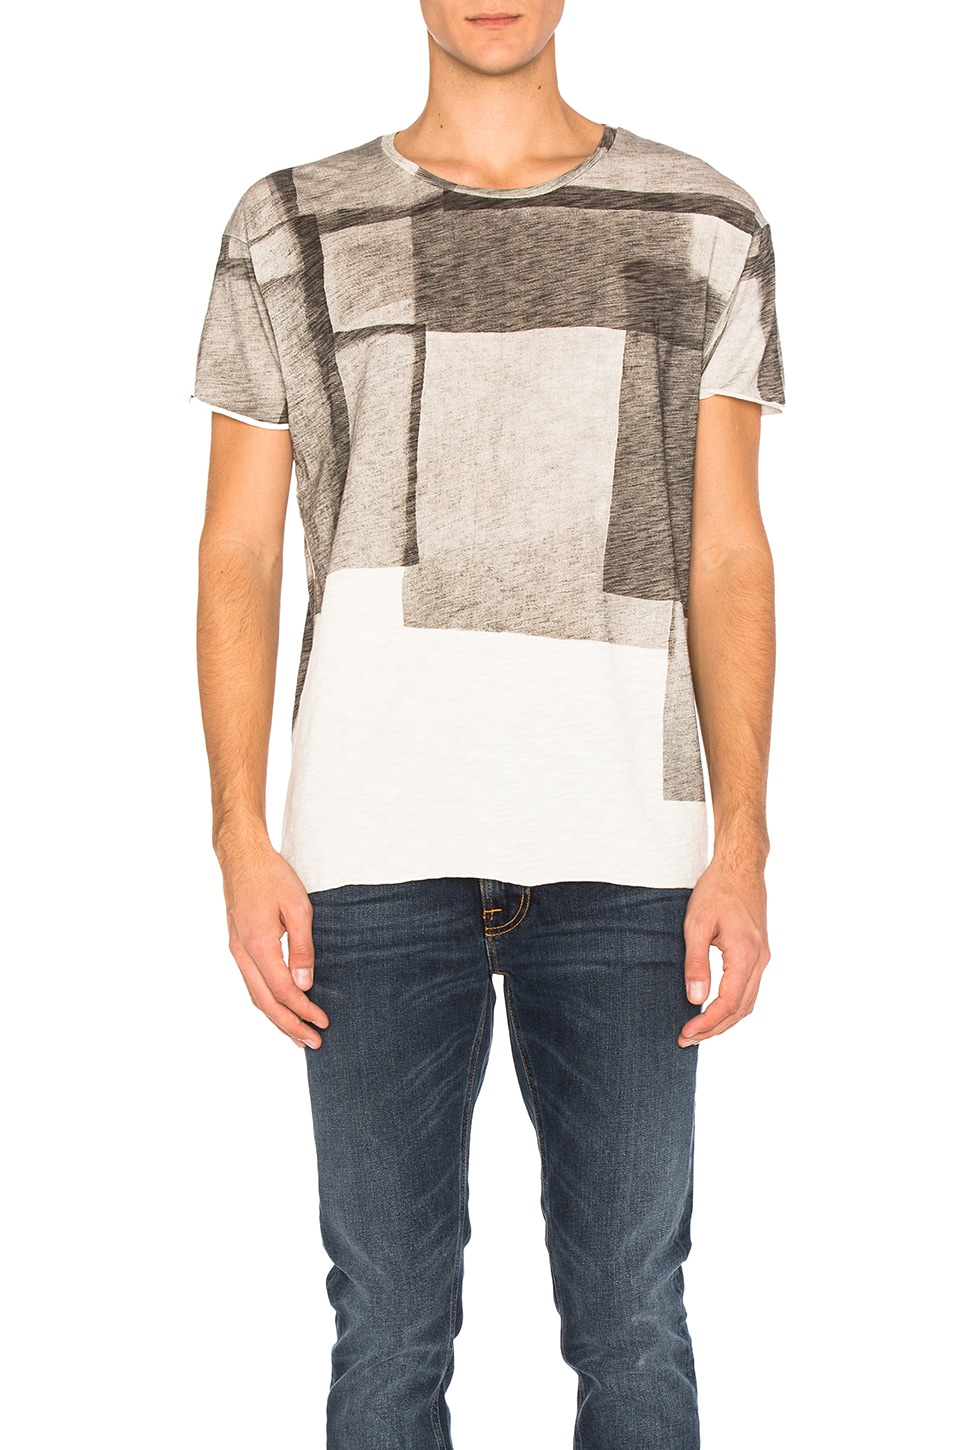 Unfinished Hem Club Collage T Shirt by Nudie Jeans